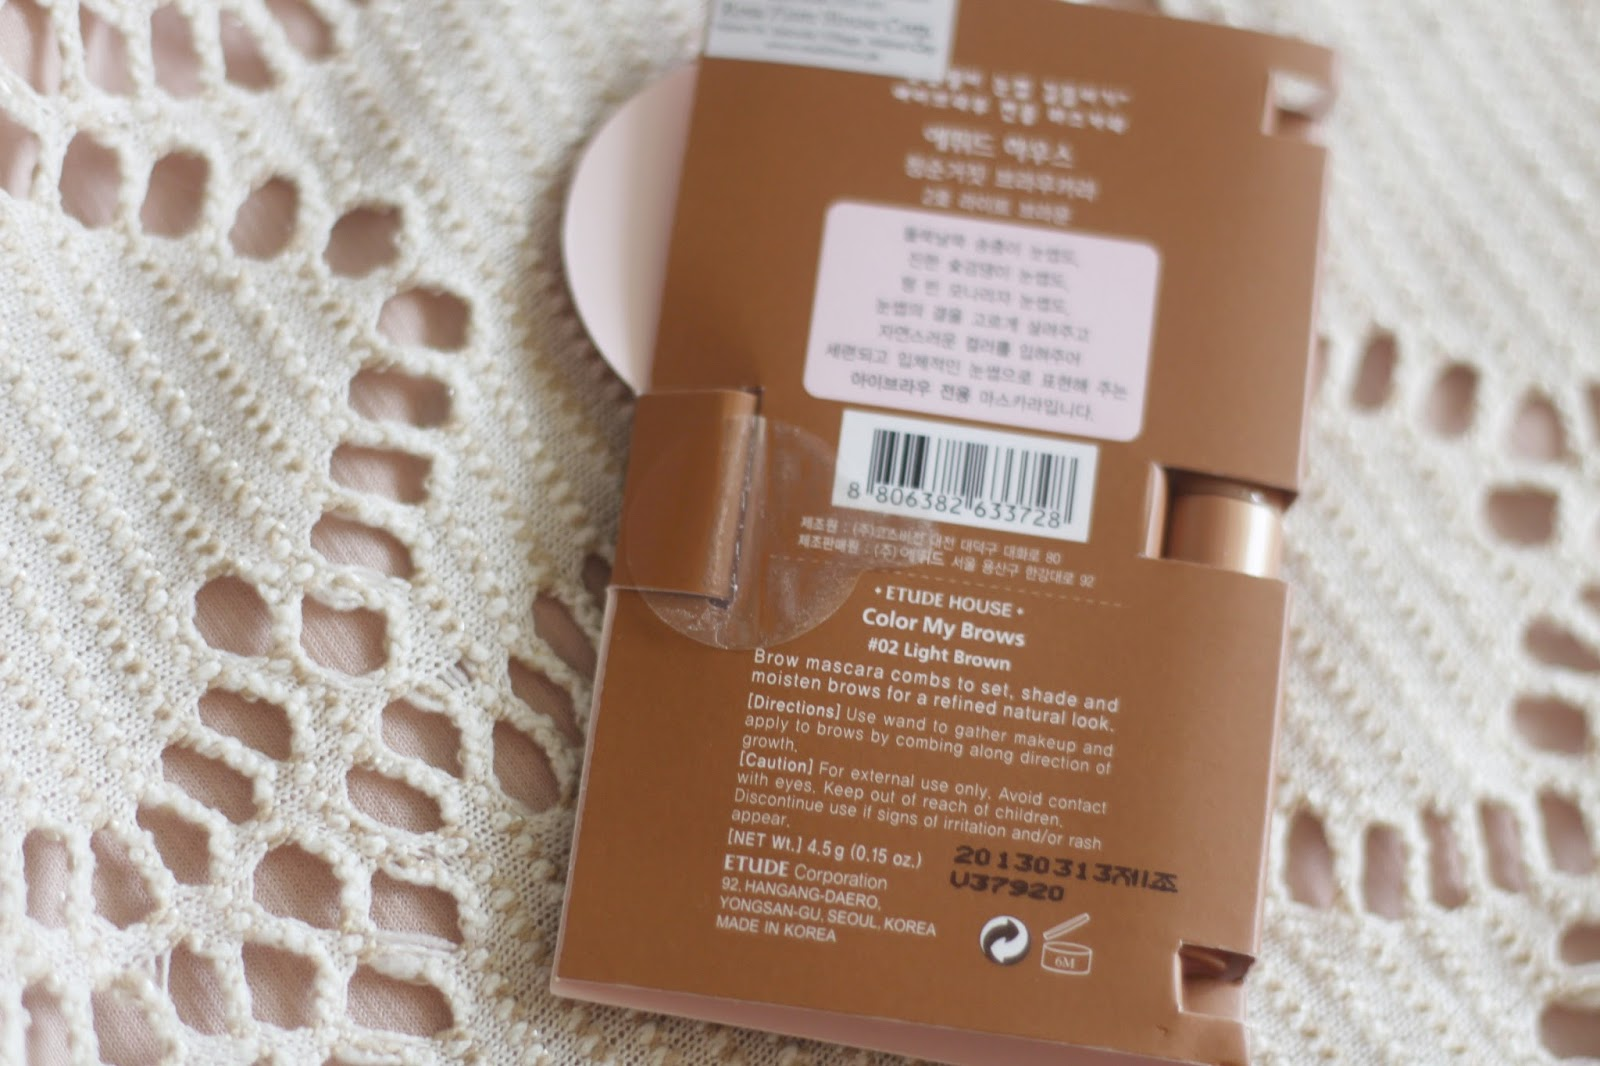 Littellebratontheloose Review Etude House Color My Brows Brow Sm City Cebu Boutique Its The Lightest Shade They Have It Is Also Available In 1 Which Brown I Got This For Only P34800